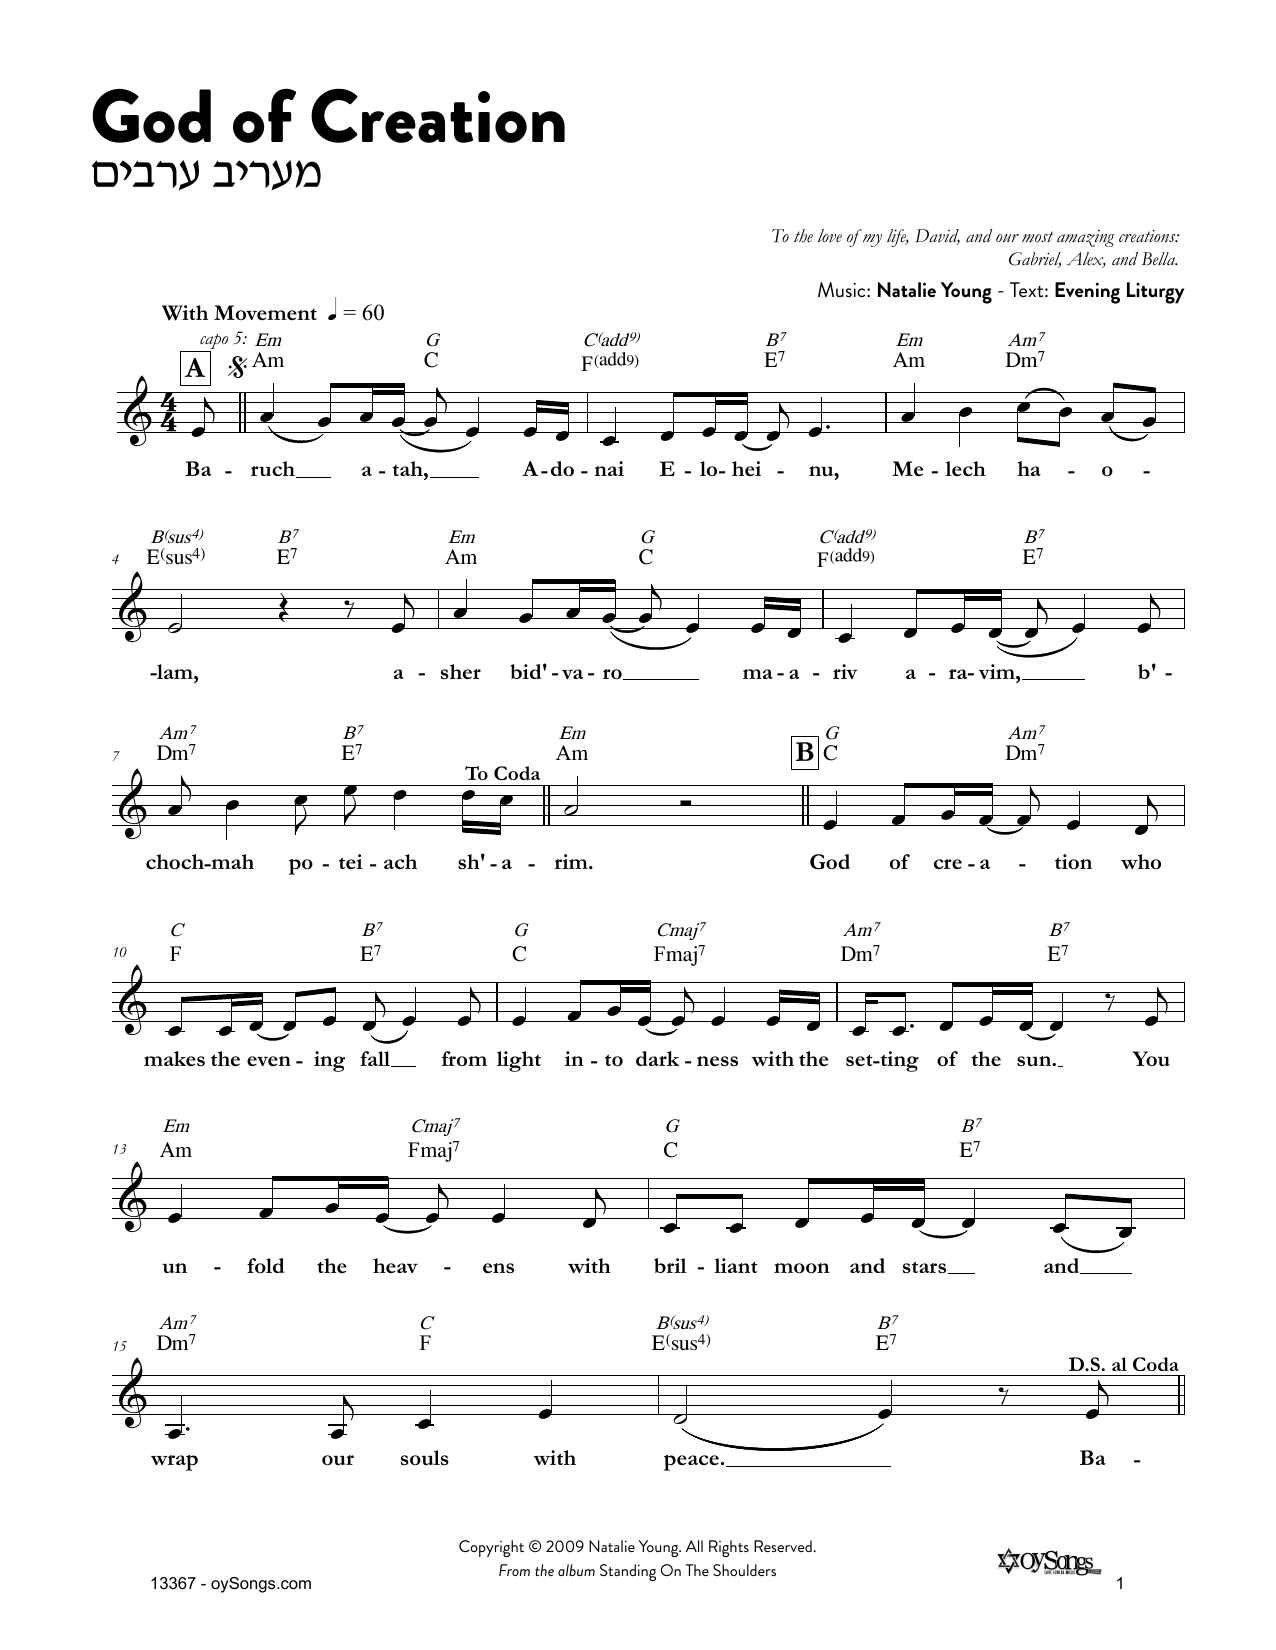 God of Creation Sheet Music